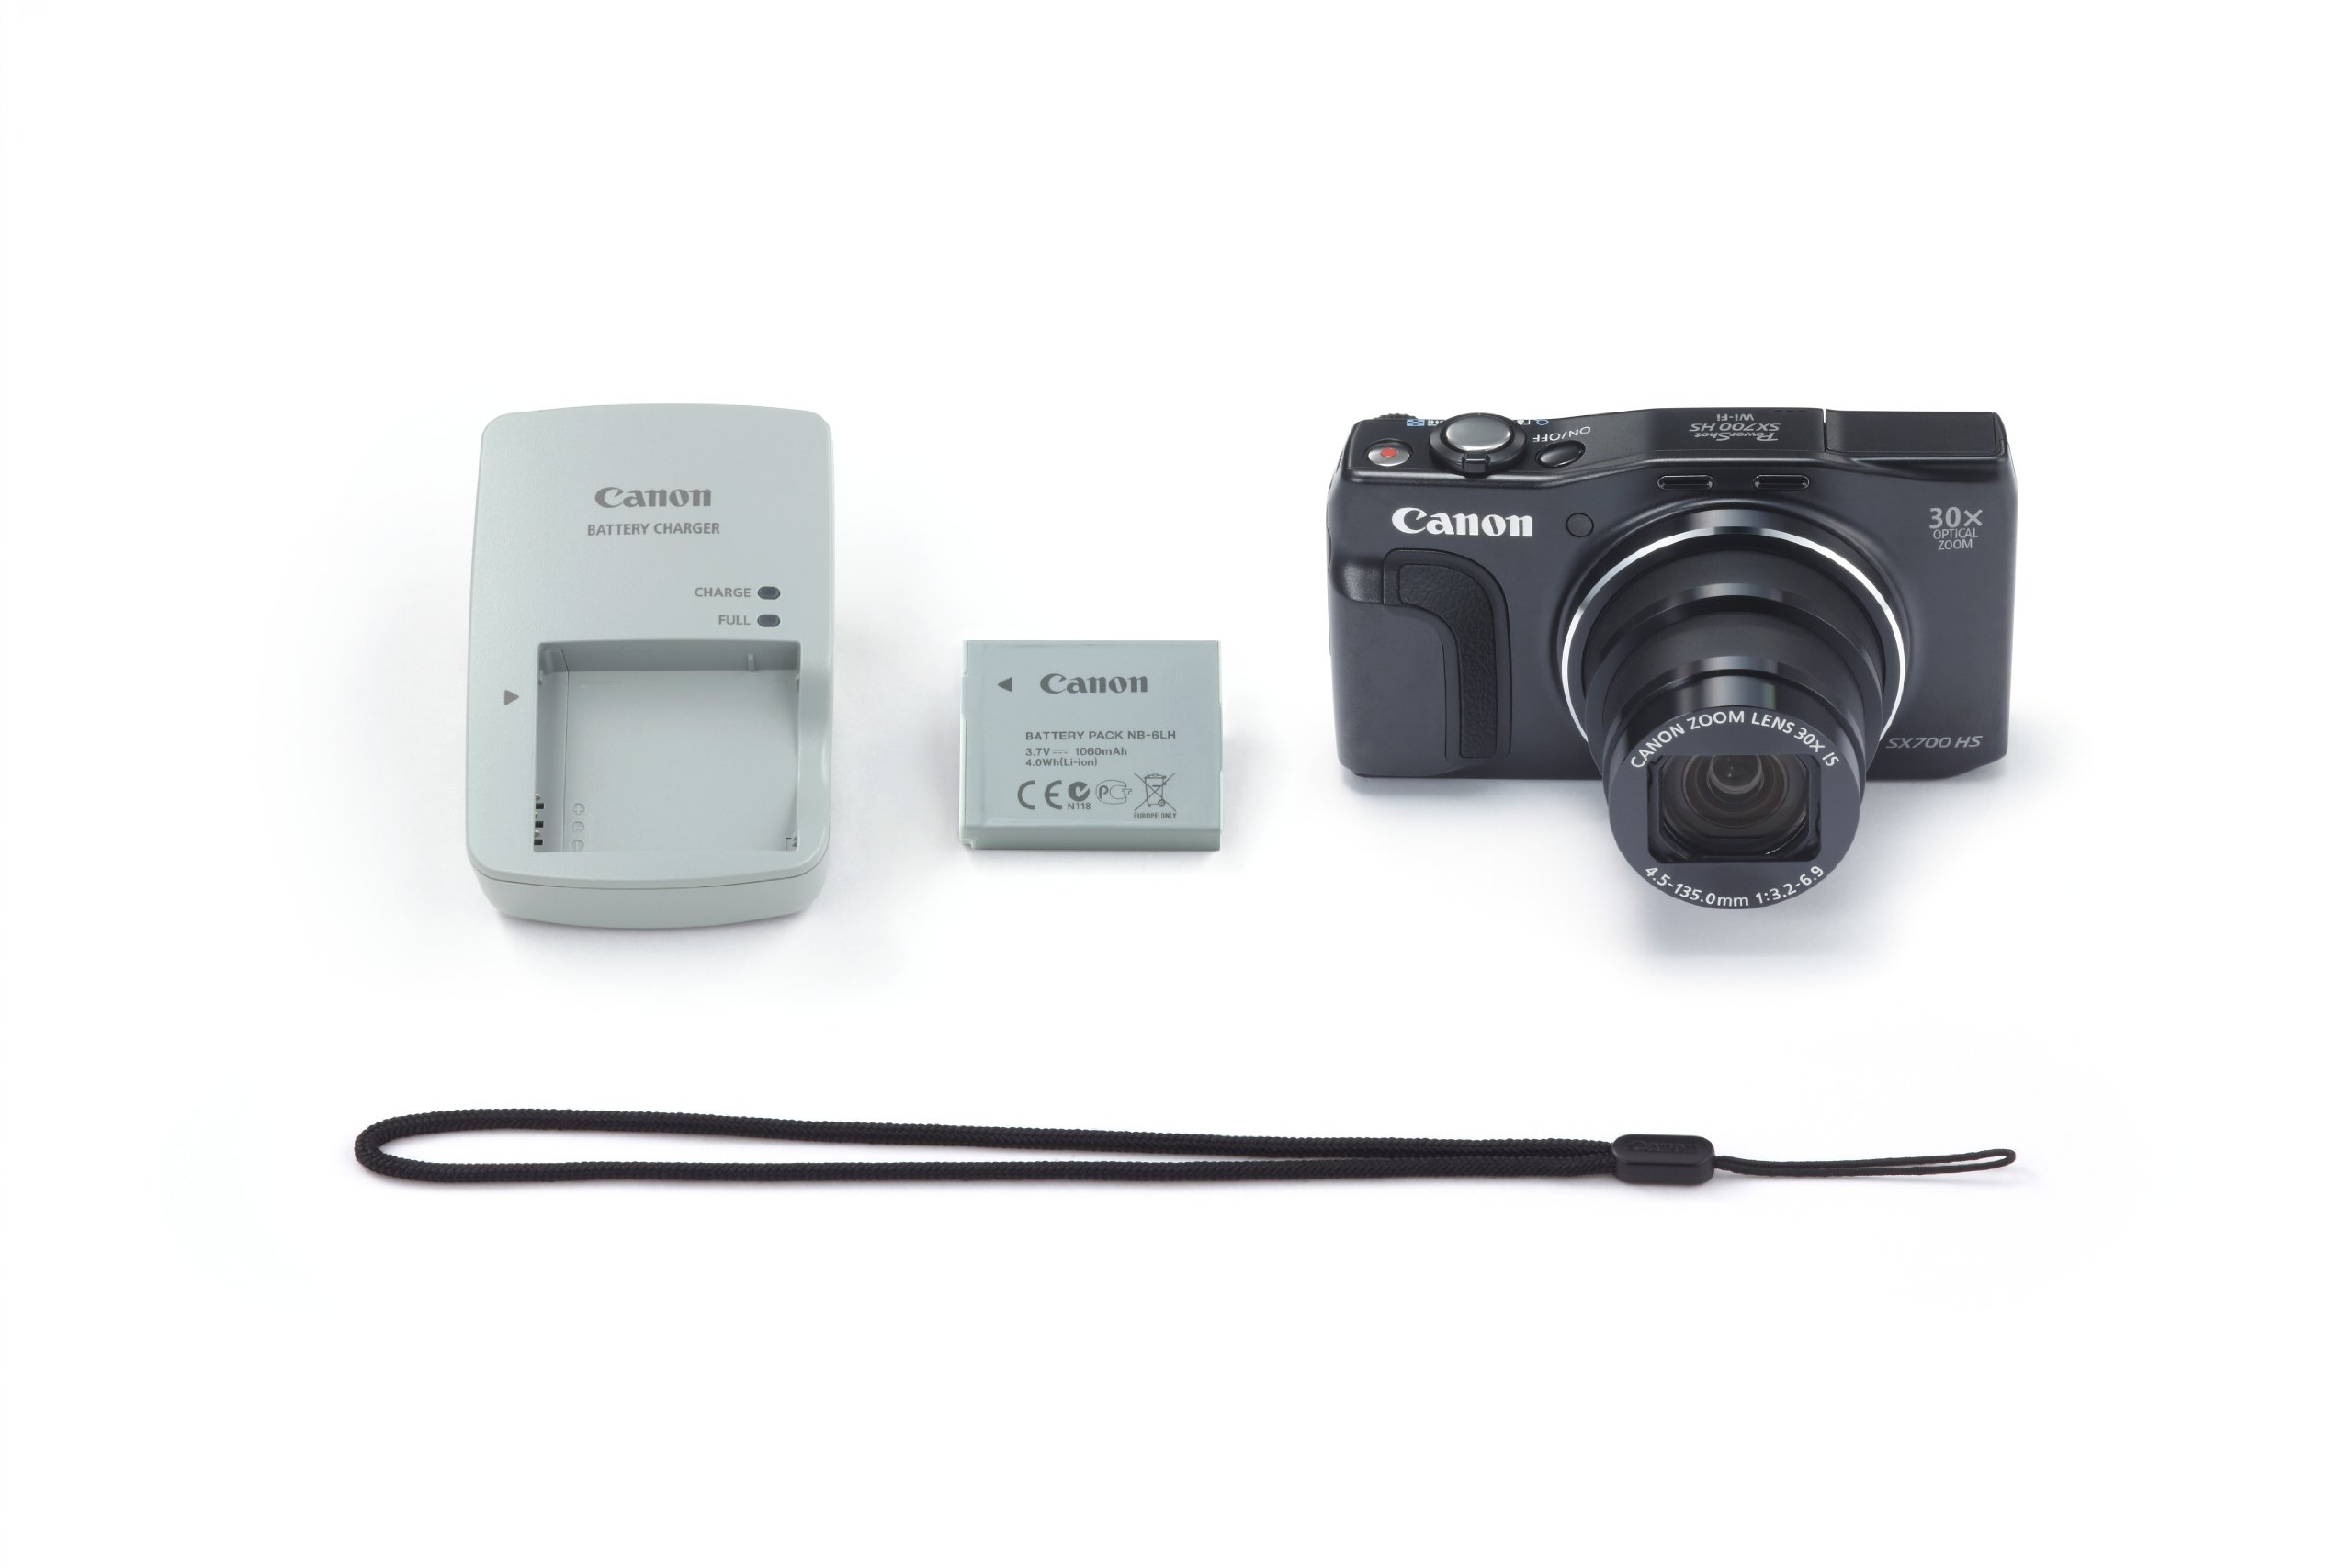 Canon PowerShot SX700 HS Digital Camera - Wi-Fi Enabled (Black) by Canon (Image #9)